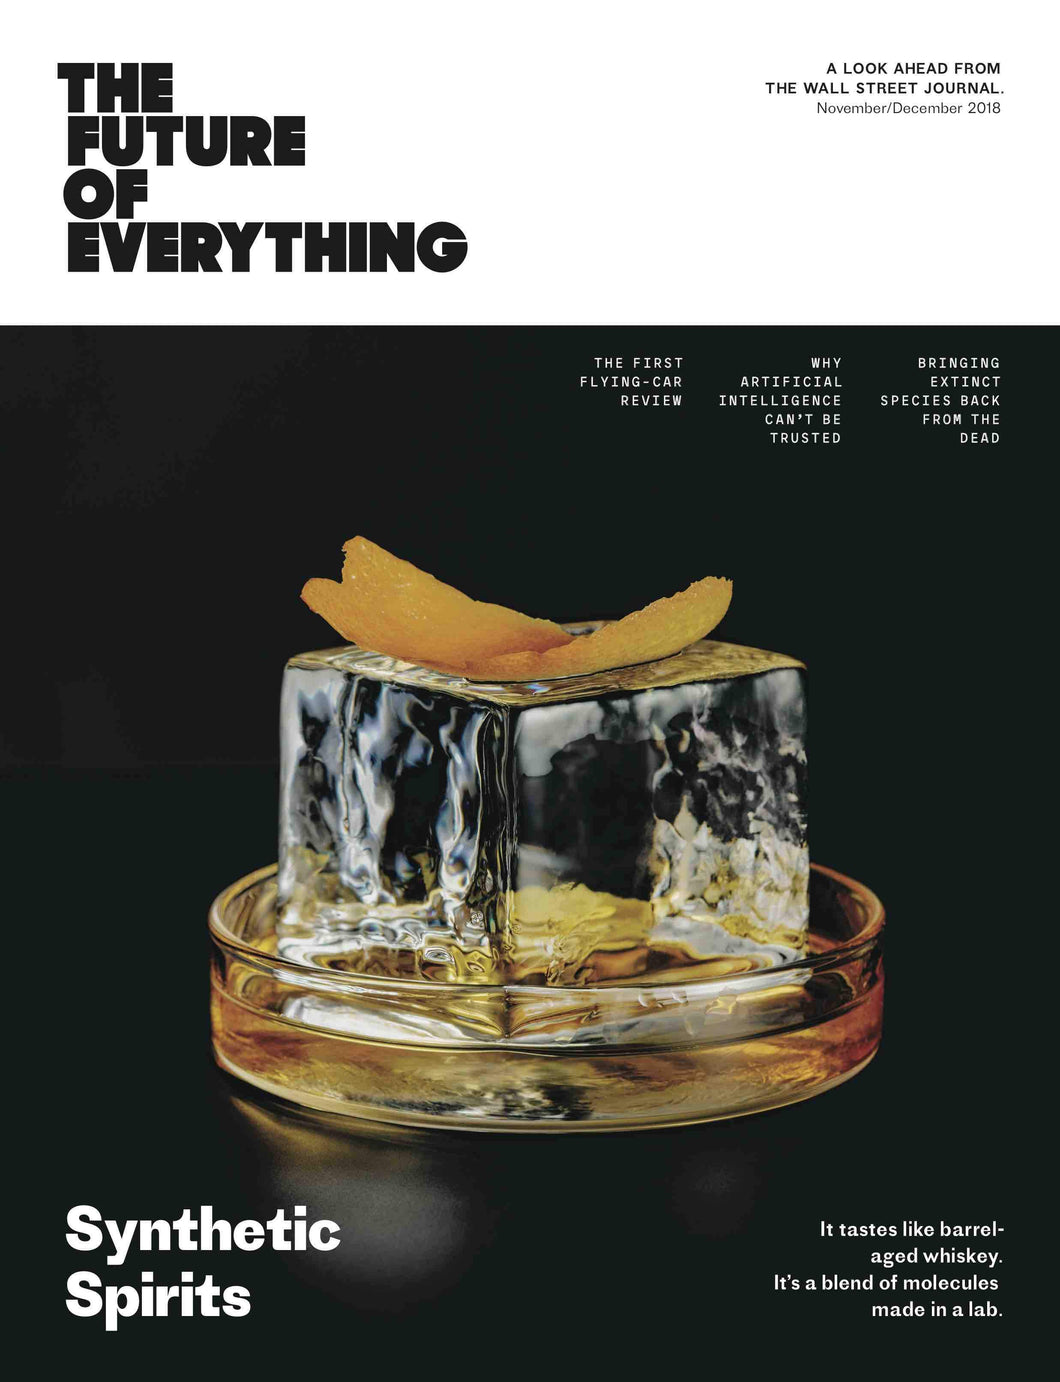 Synthetic Spirits | The Future of Everything cover November/December 2018